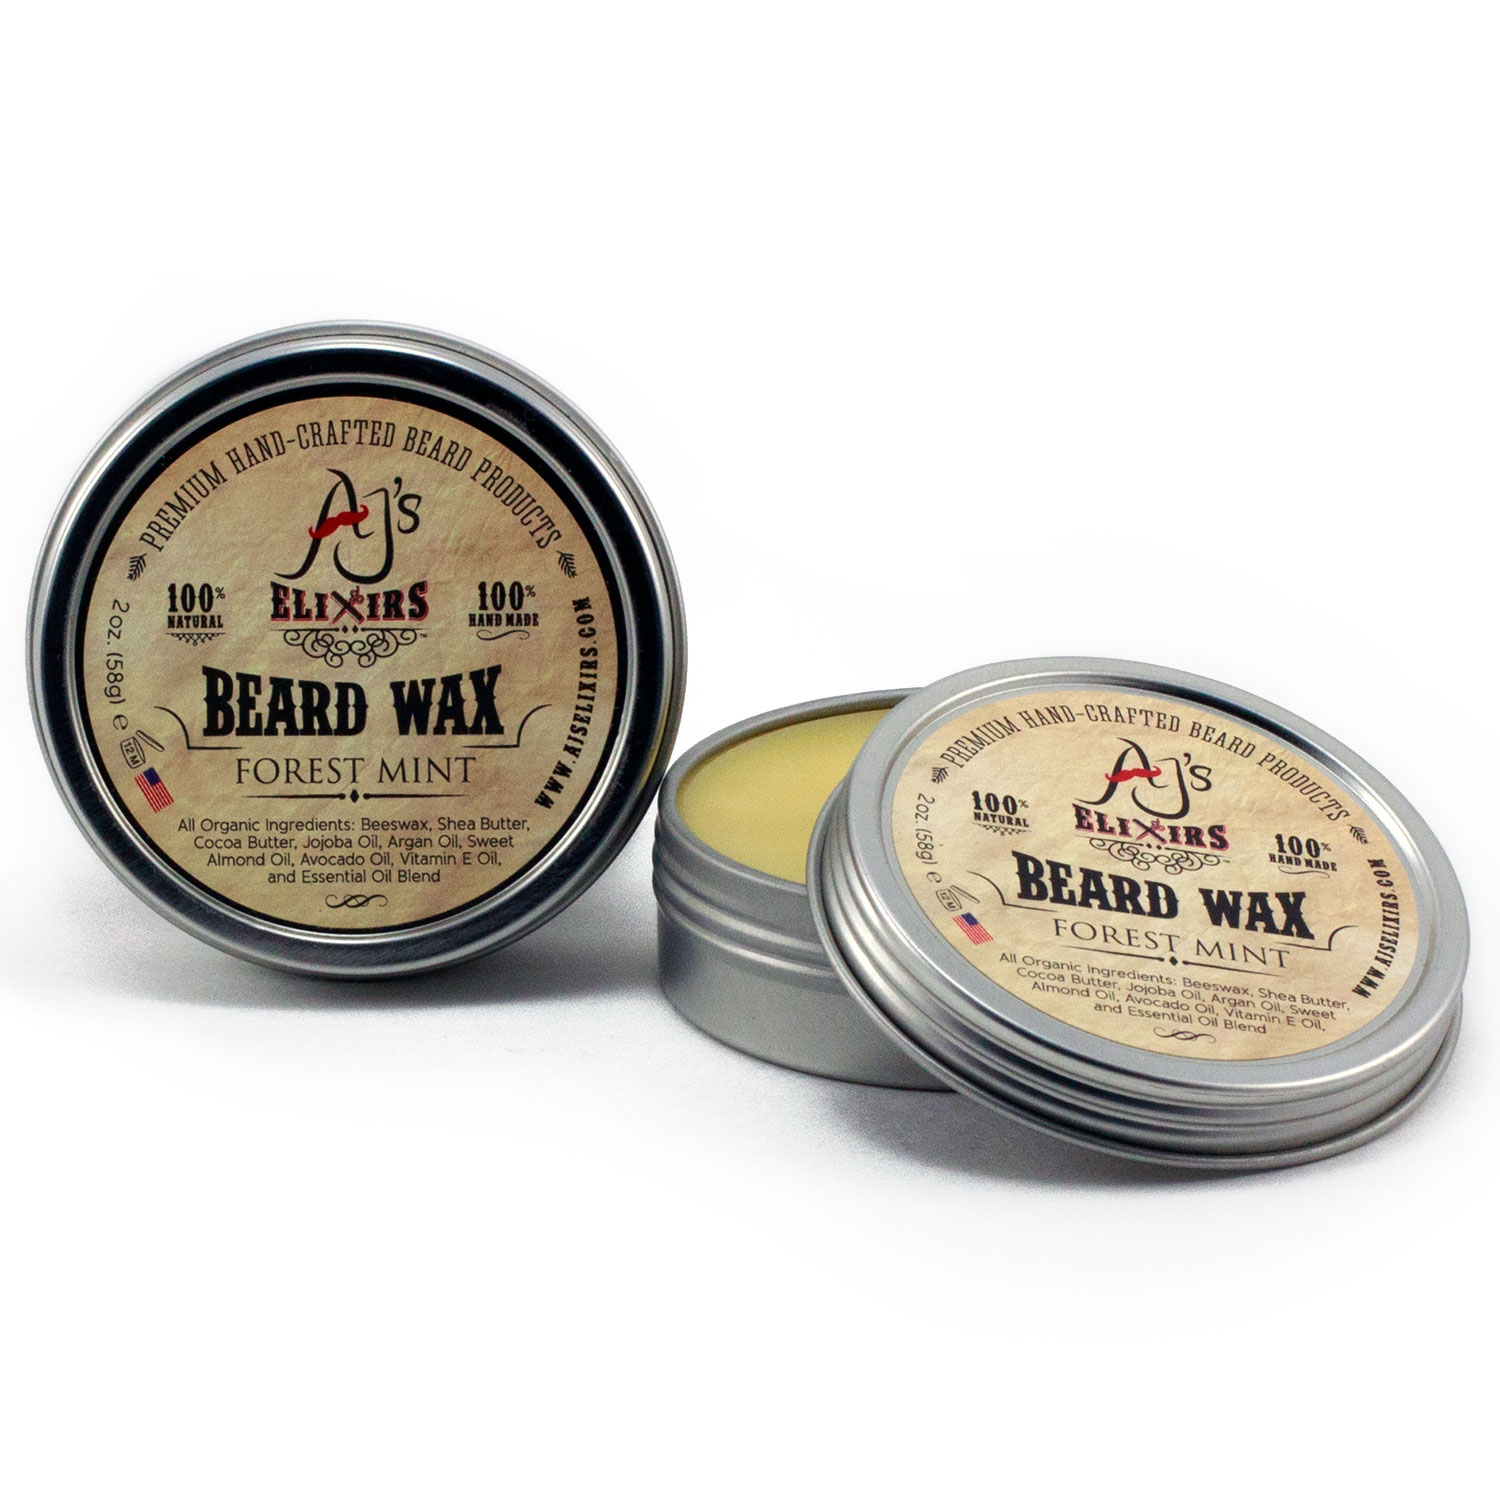 Ultra conditioning and beard softening beard wax also styles and shapes for a soft and stylish look.